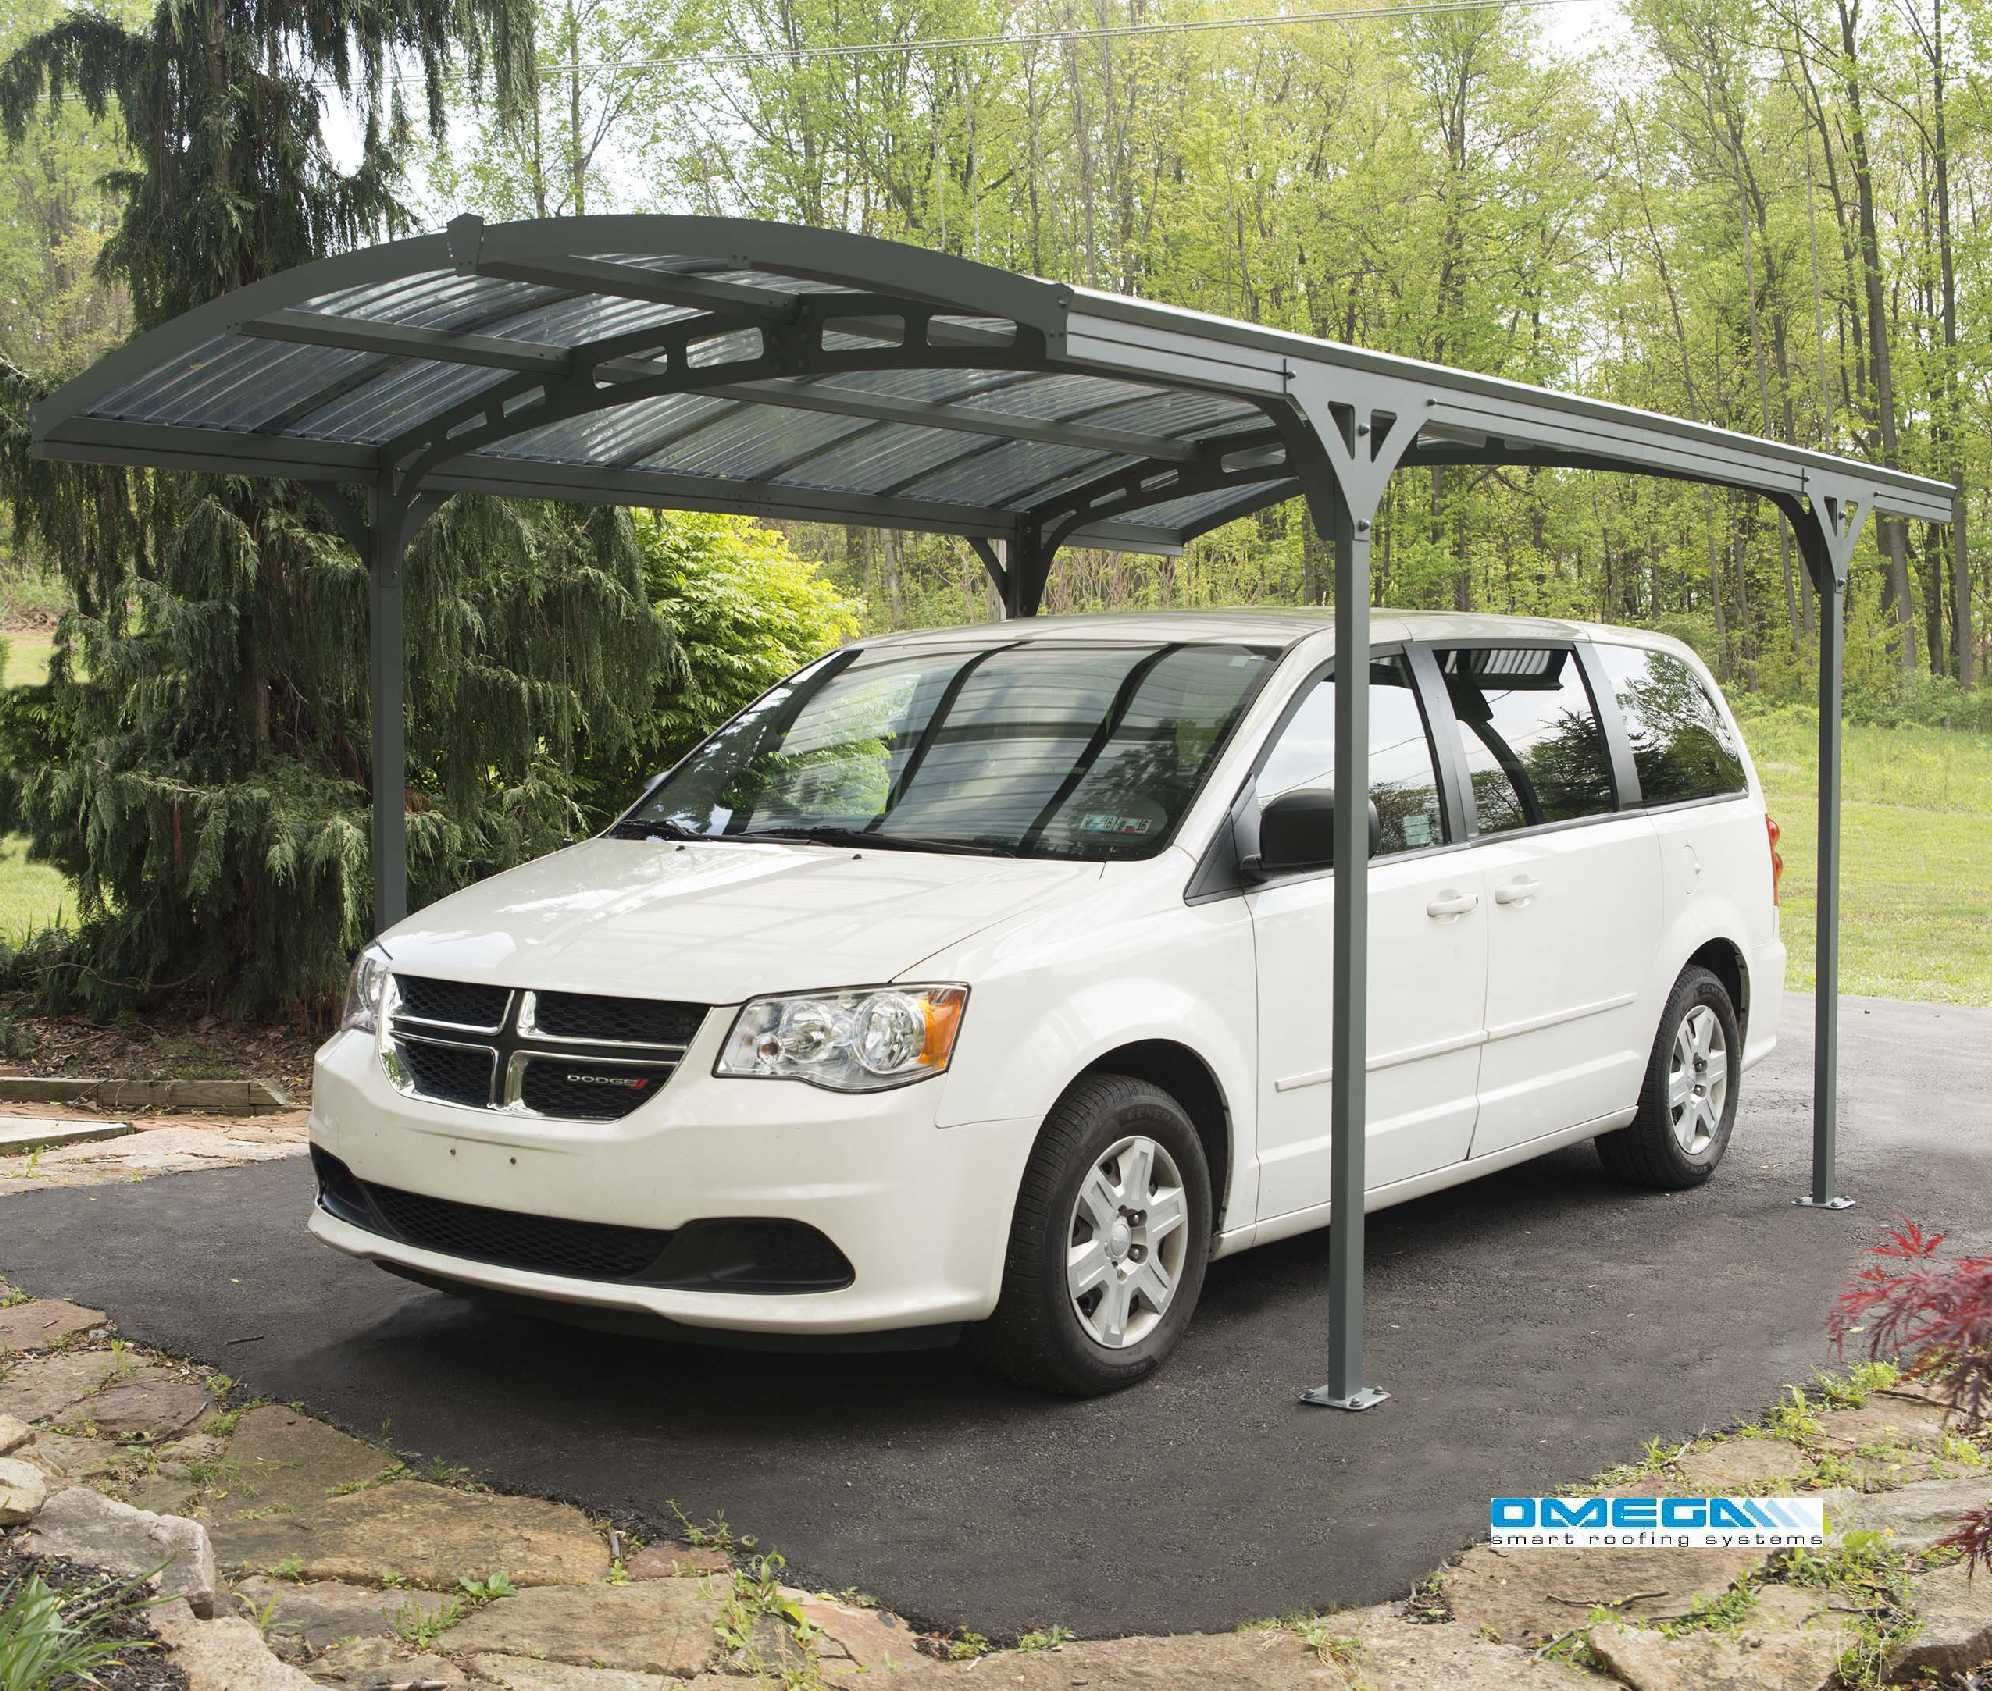 Vanguard 5000 Free Standing Car Port: Curved Roof Freestanding Canopy